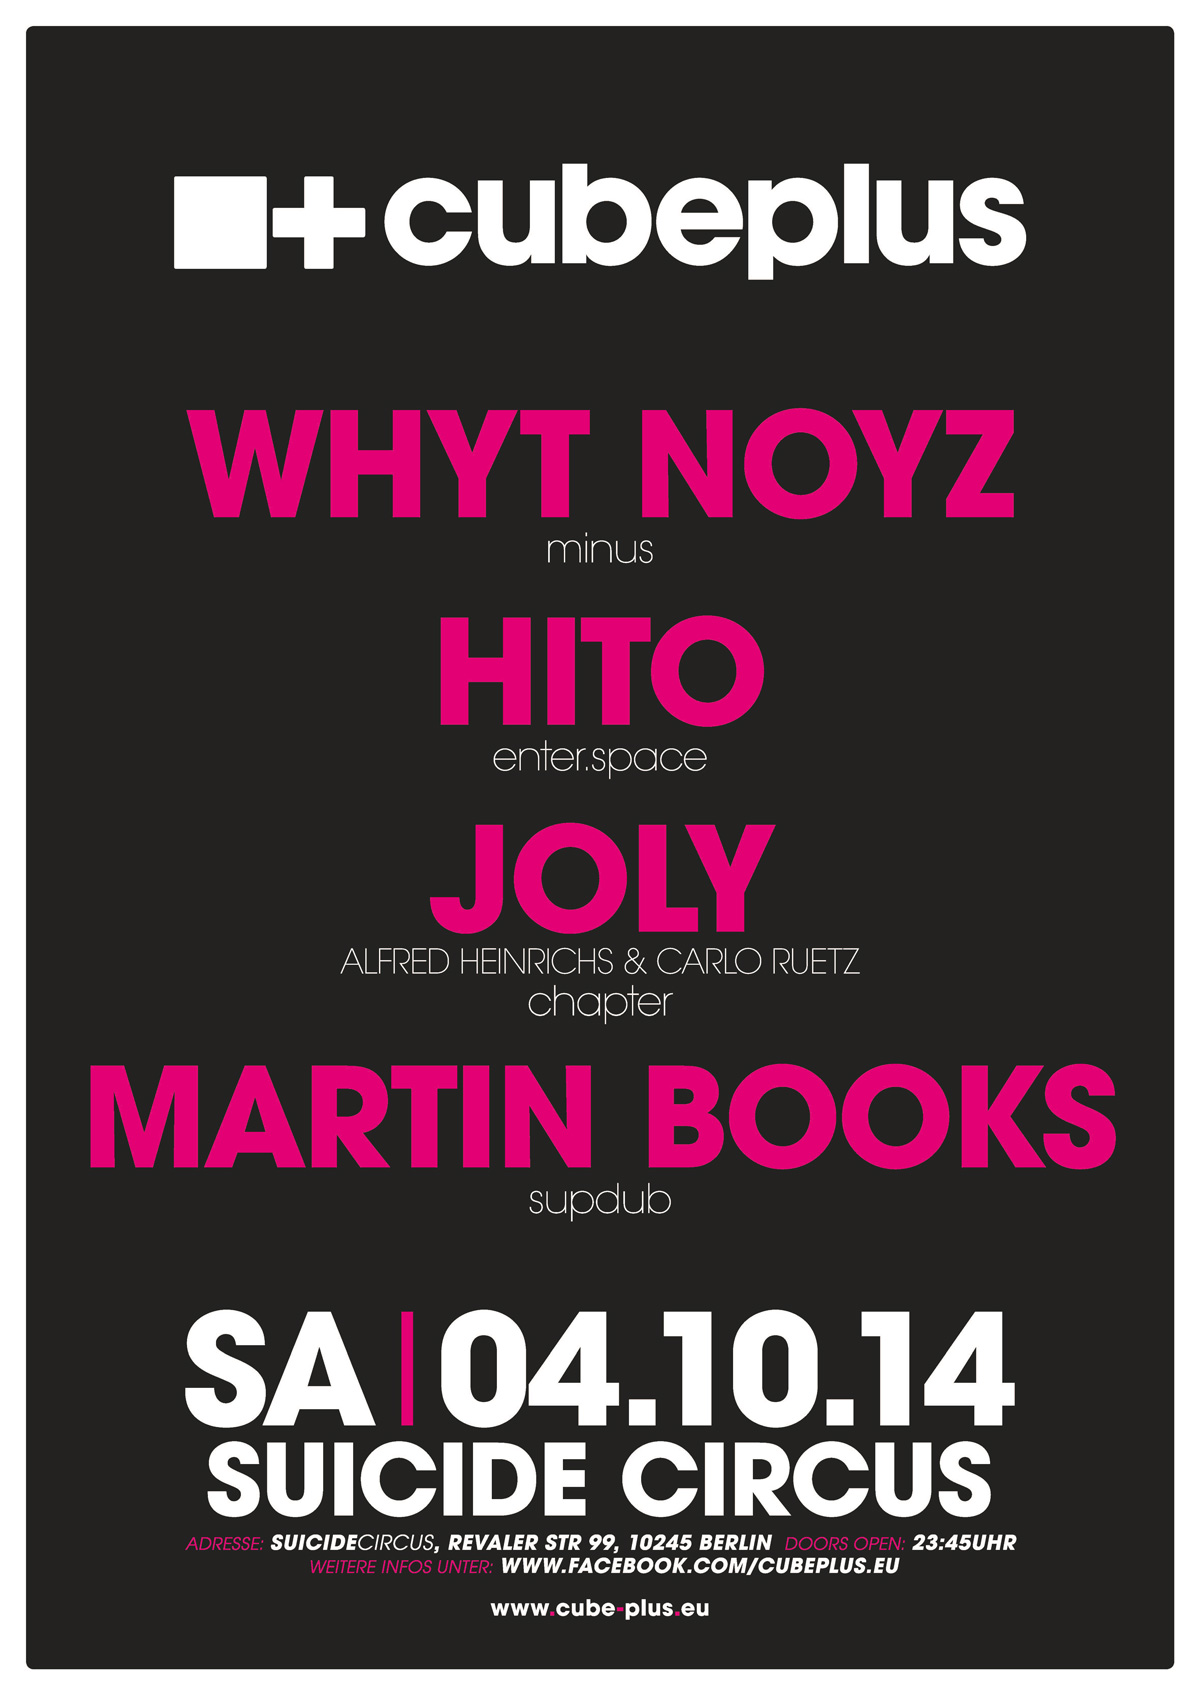 04.10.2014 – Cube Plus Night mit WHYT NOYZ & Hito & Supdub Residents – Suicide Circus, Berlin